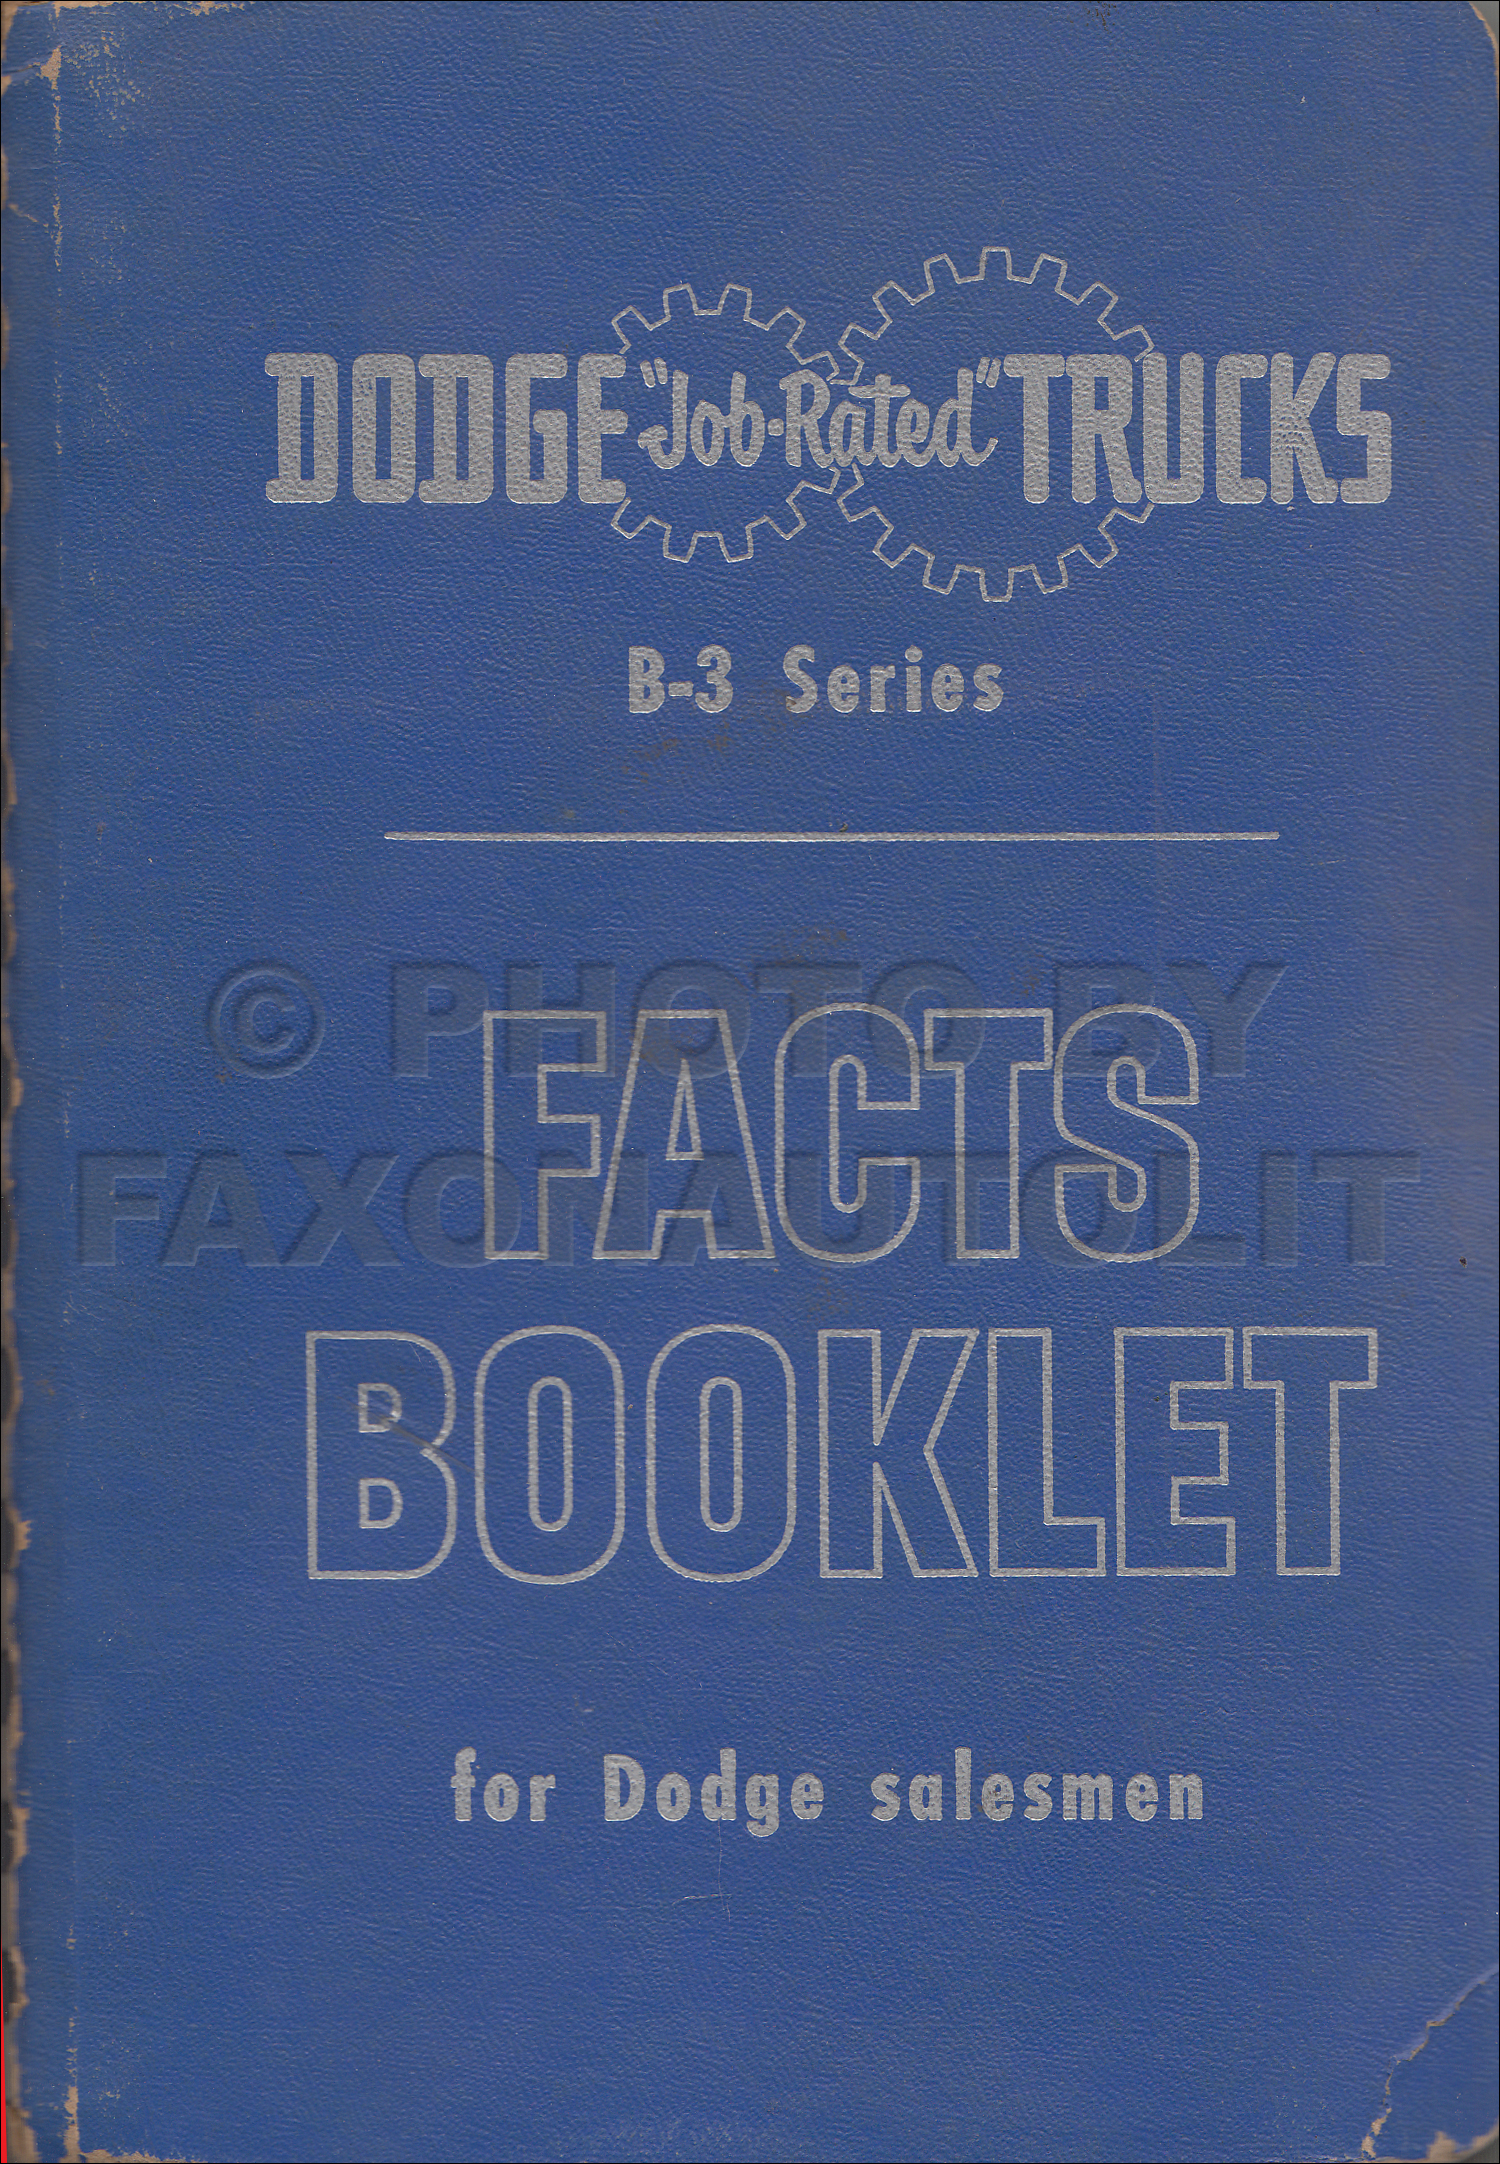 1952 Dodge Truck Data Book Original